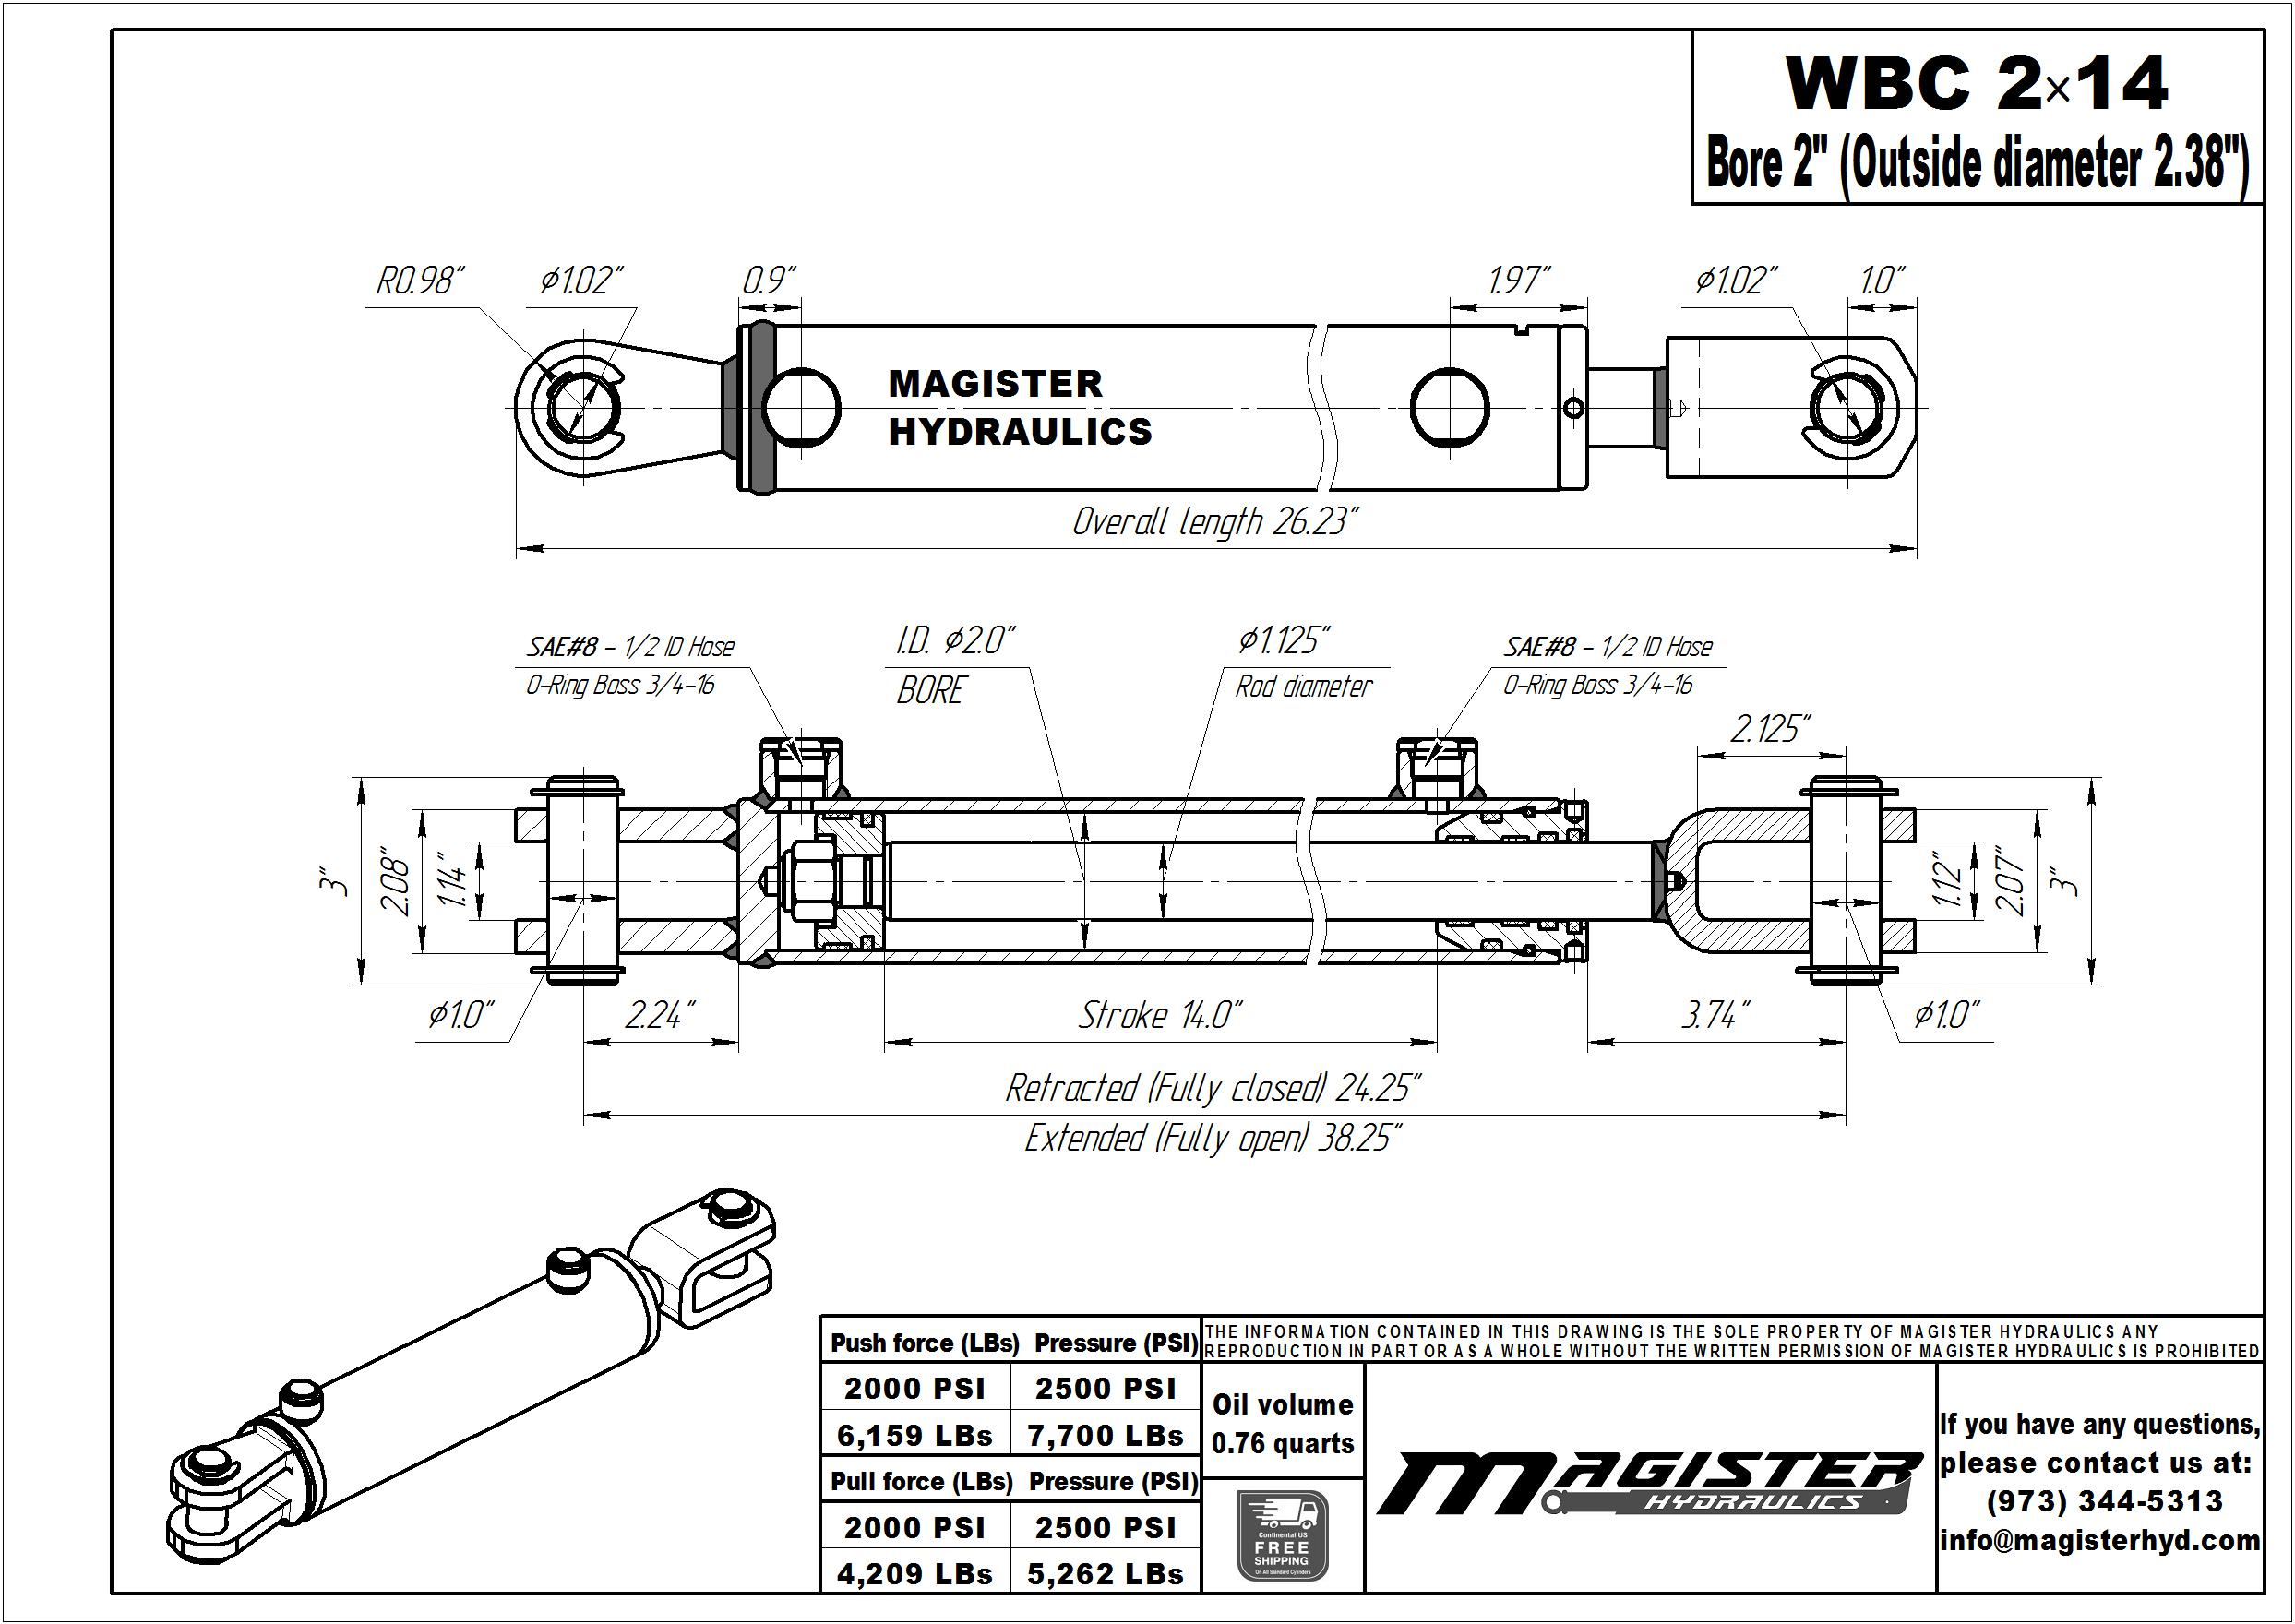 2 bore x 14 stroke hydraulic cylinder, ag clevis double acting cylinder | Magister Hydraulics